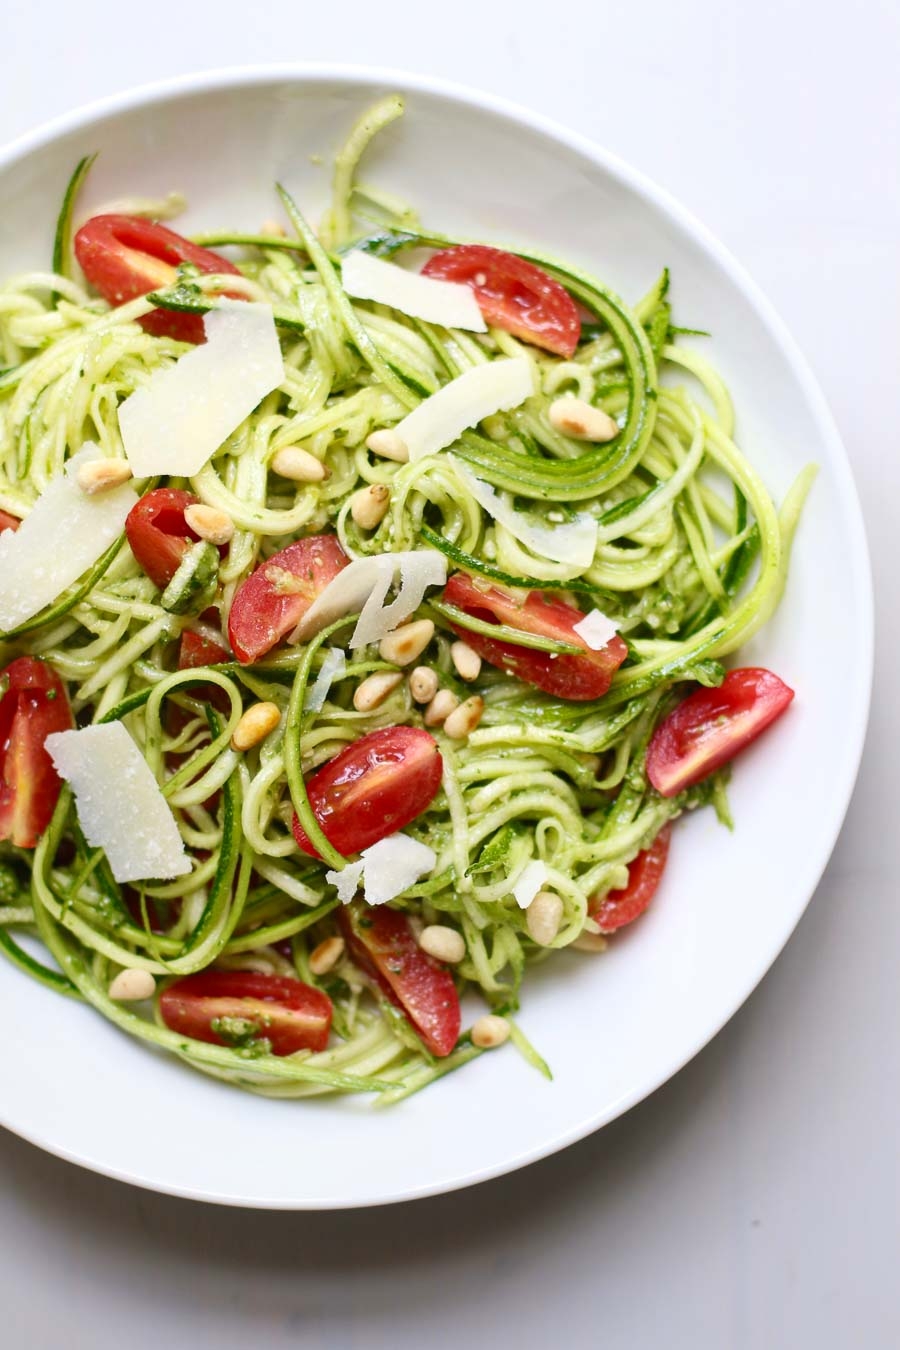 Pesto Zucchini Noodle Salad topped with pine nuts and shaved parmesan